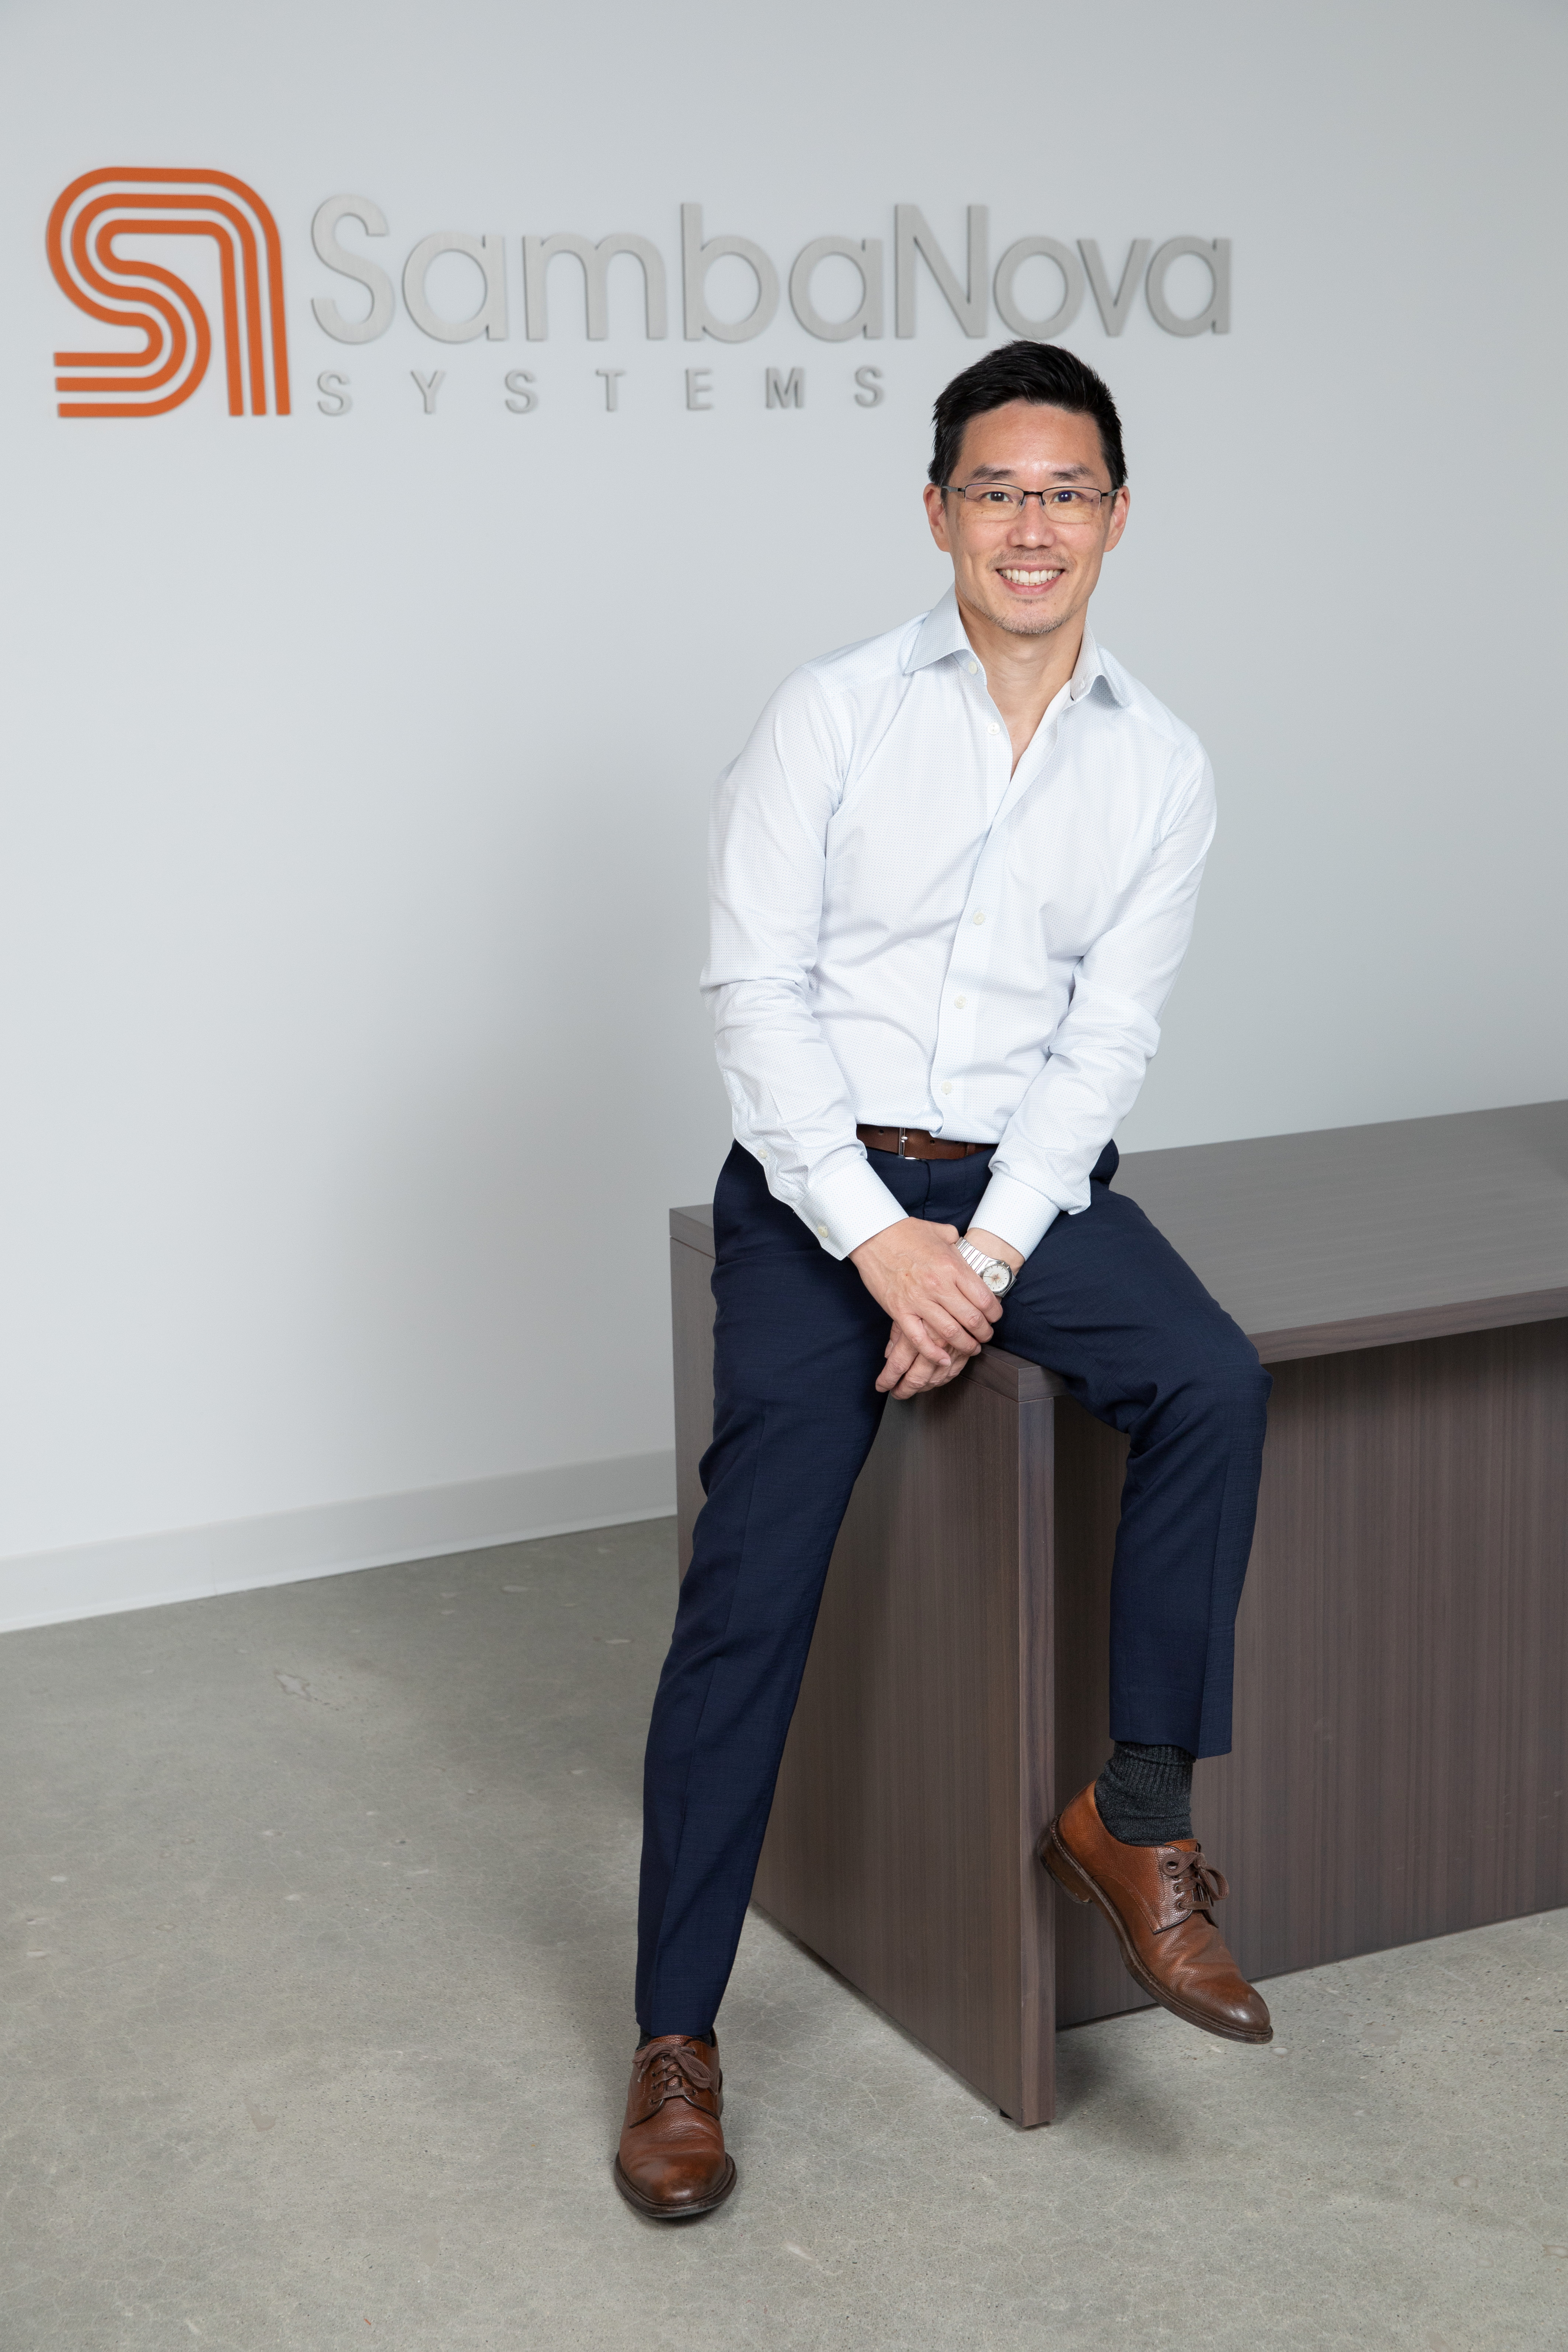 Rodrigo Liang, SambaNova Systems co-founder and CEO, poses in front of the company logo in Palo Alto, U.S. in this undated handout photo. SambaNova makes semiconductors for artificial intelligence computation work and announced it raised $676 million in its latest funding round. CHRISTOPHE TESTI/Creative Shot Photography/Handout via REUTERS  THIS IMAGE HAS BEEN SUPPLIED BY A THIRD PARTY. NO RESALES. NO ARCHIVES